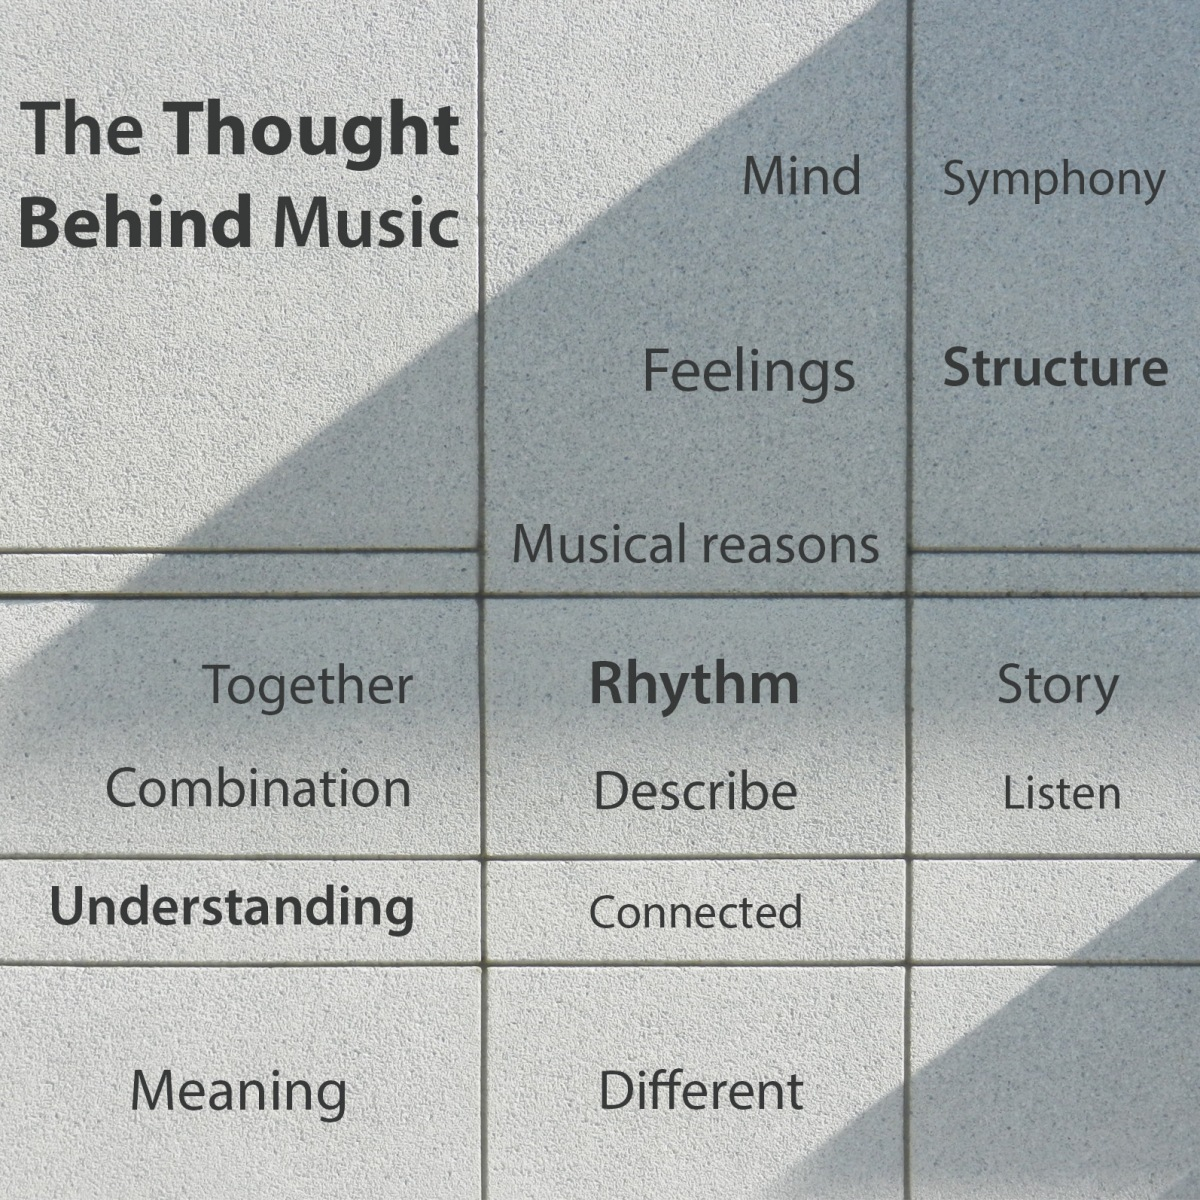 What Does Music Mean?